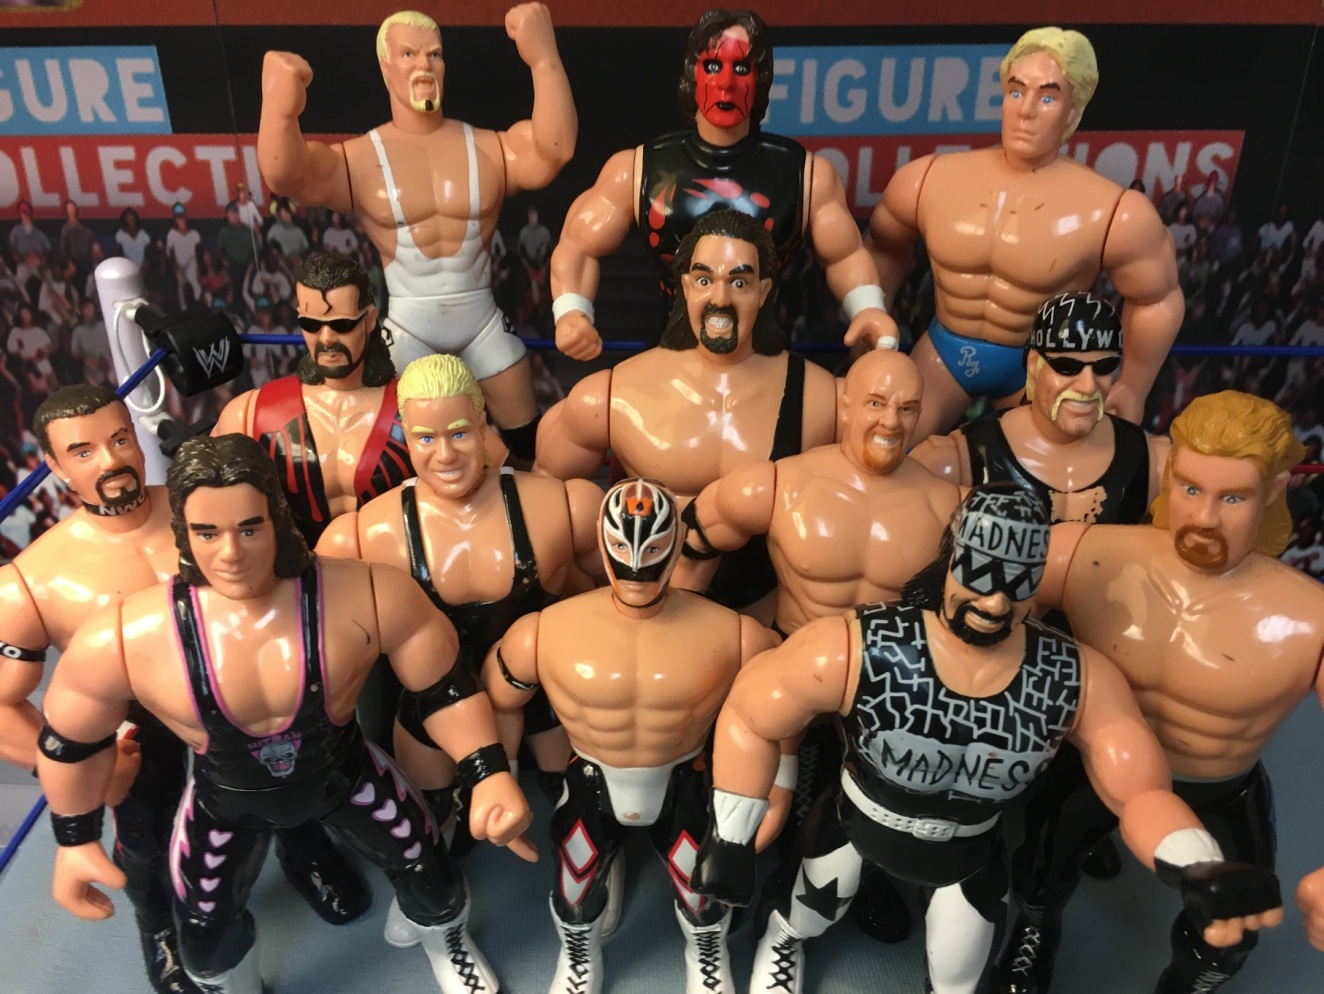 WCW Wrestling Original San Francisco Toy Makers OSFTM Series Randy Savage Rick Steiner Scott Steiner Goldberg Bret Hart The Giant Ric Flair Sting Big Show Mr Perfect Figures